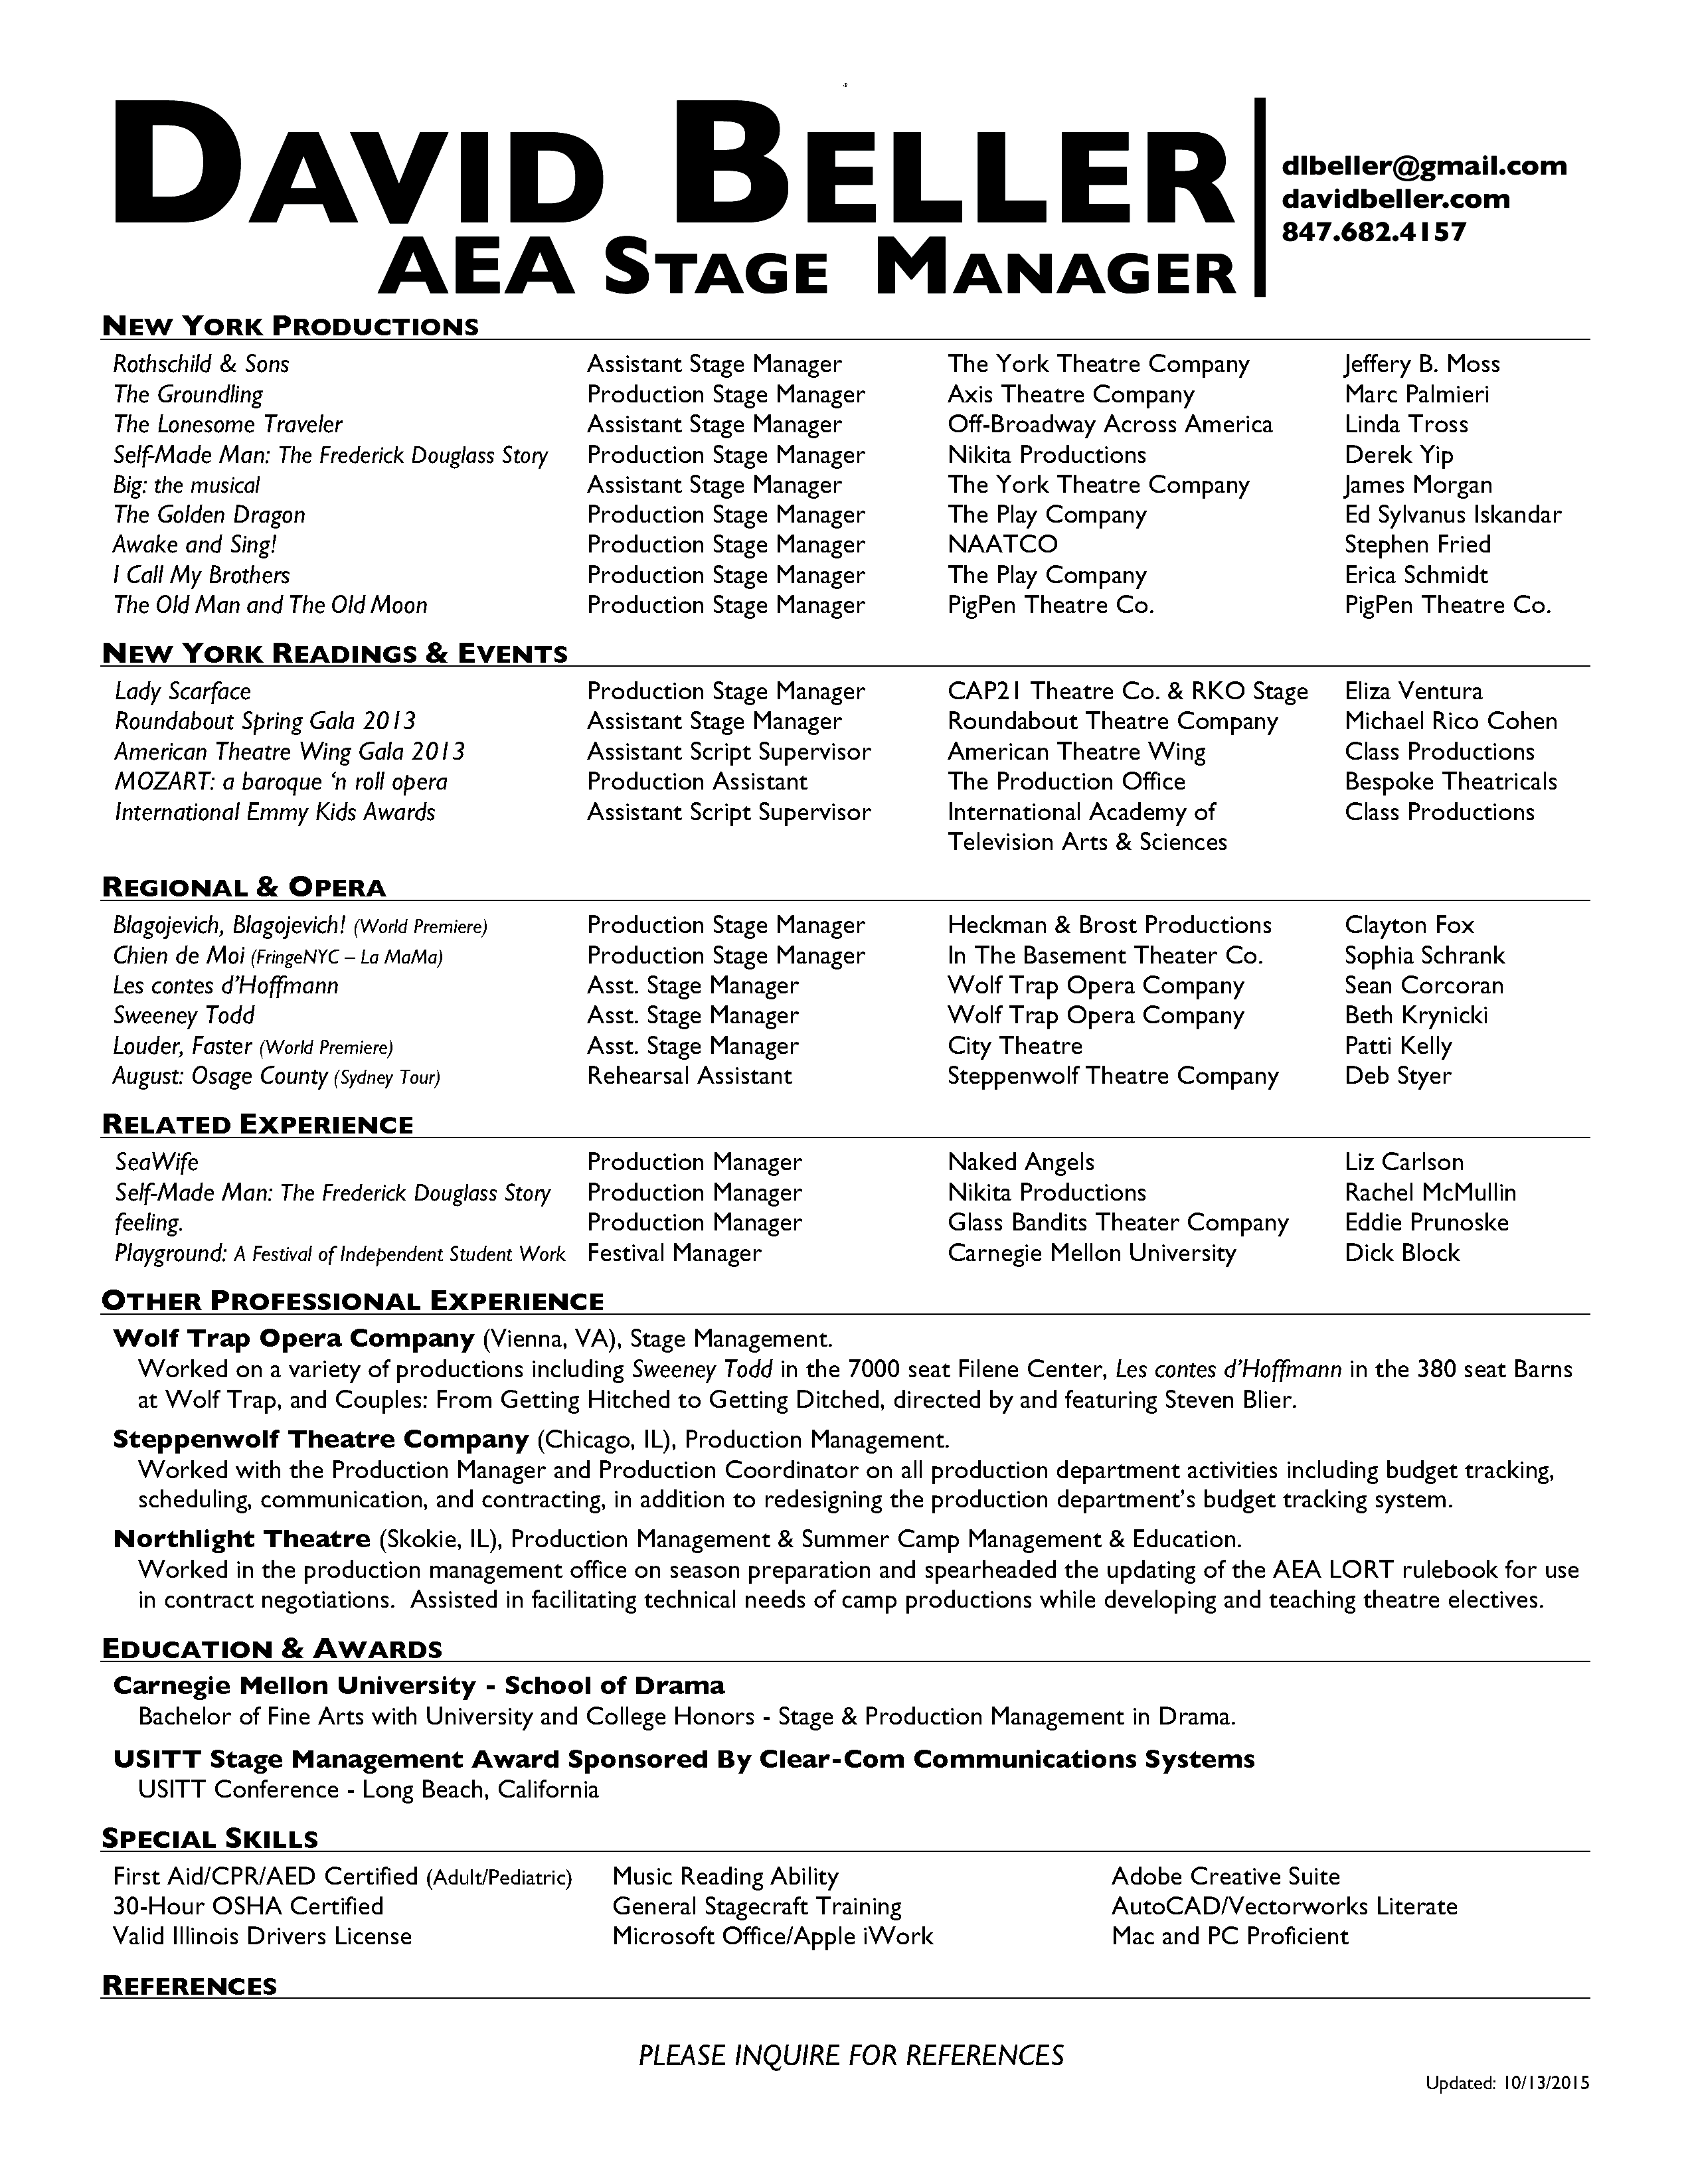 Graduate student term papers: - Binghamton production manager ...